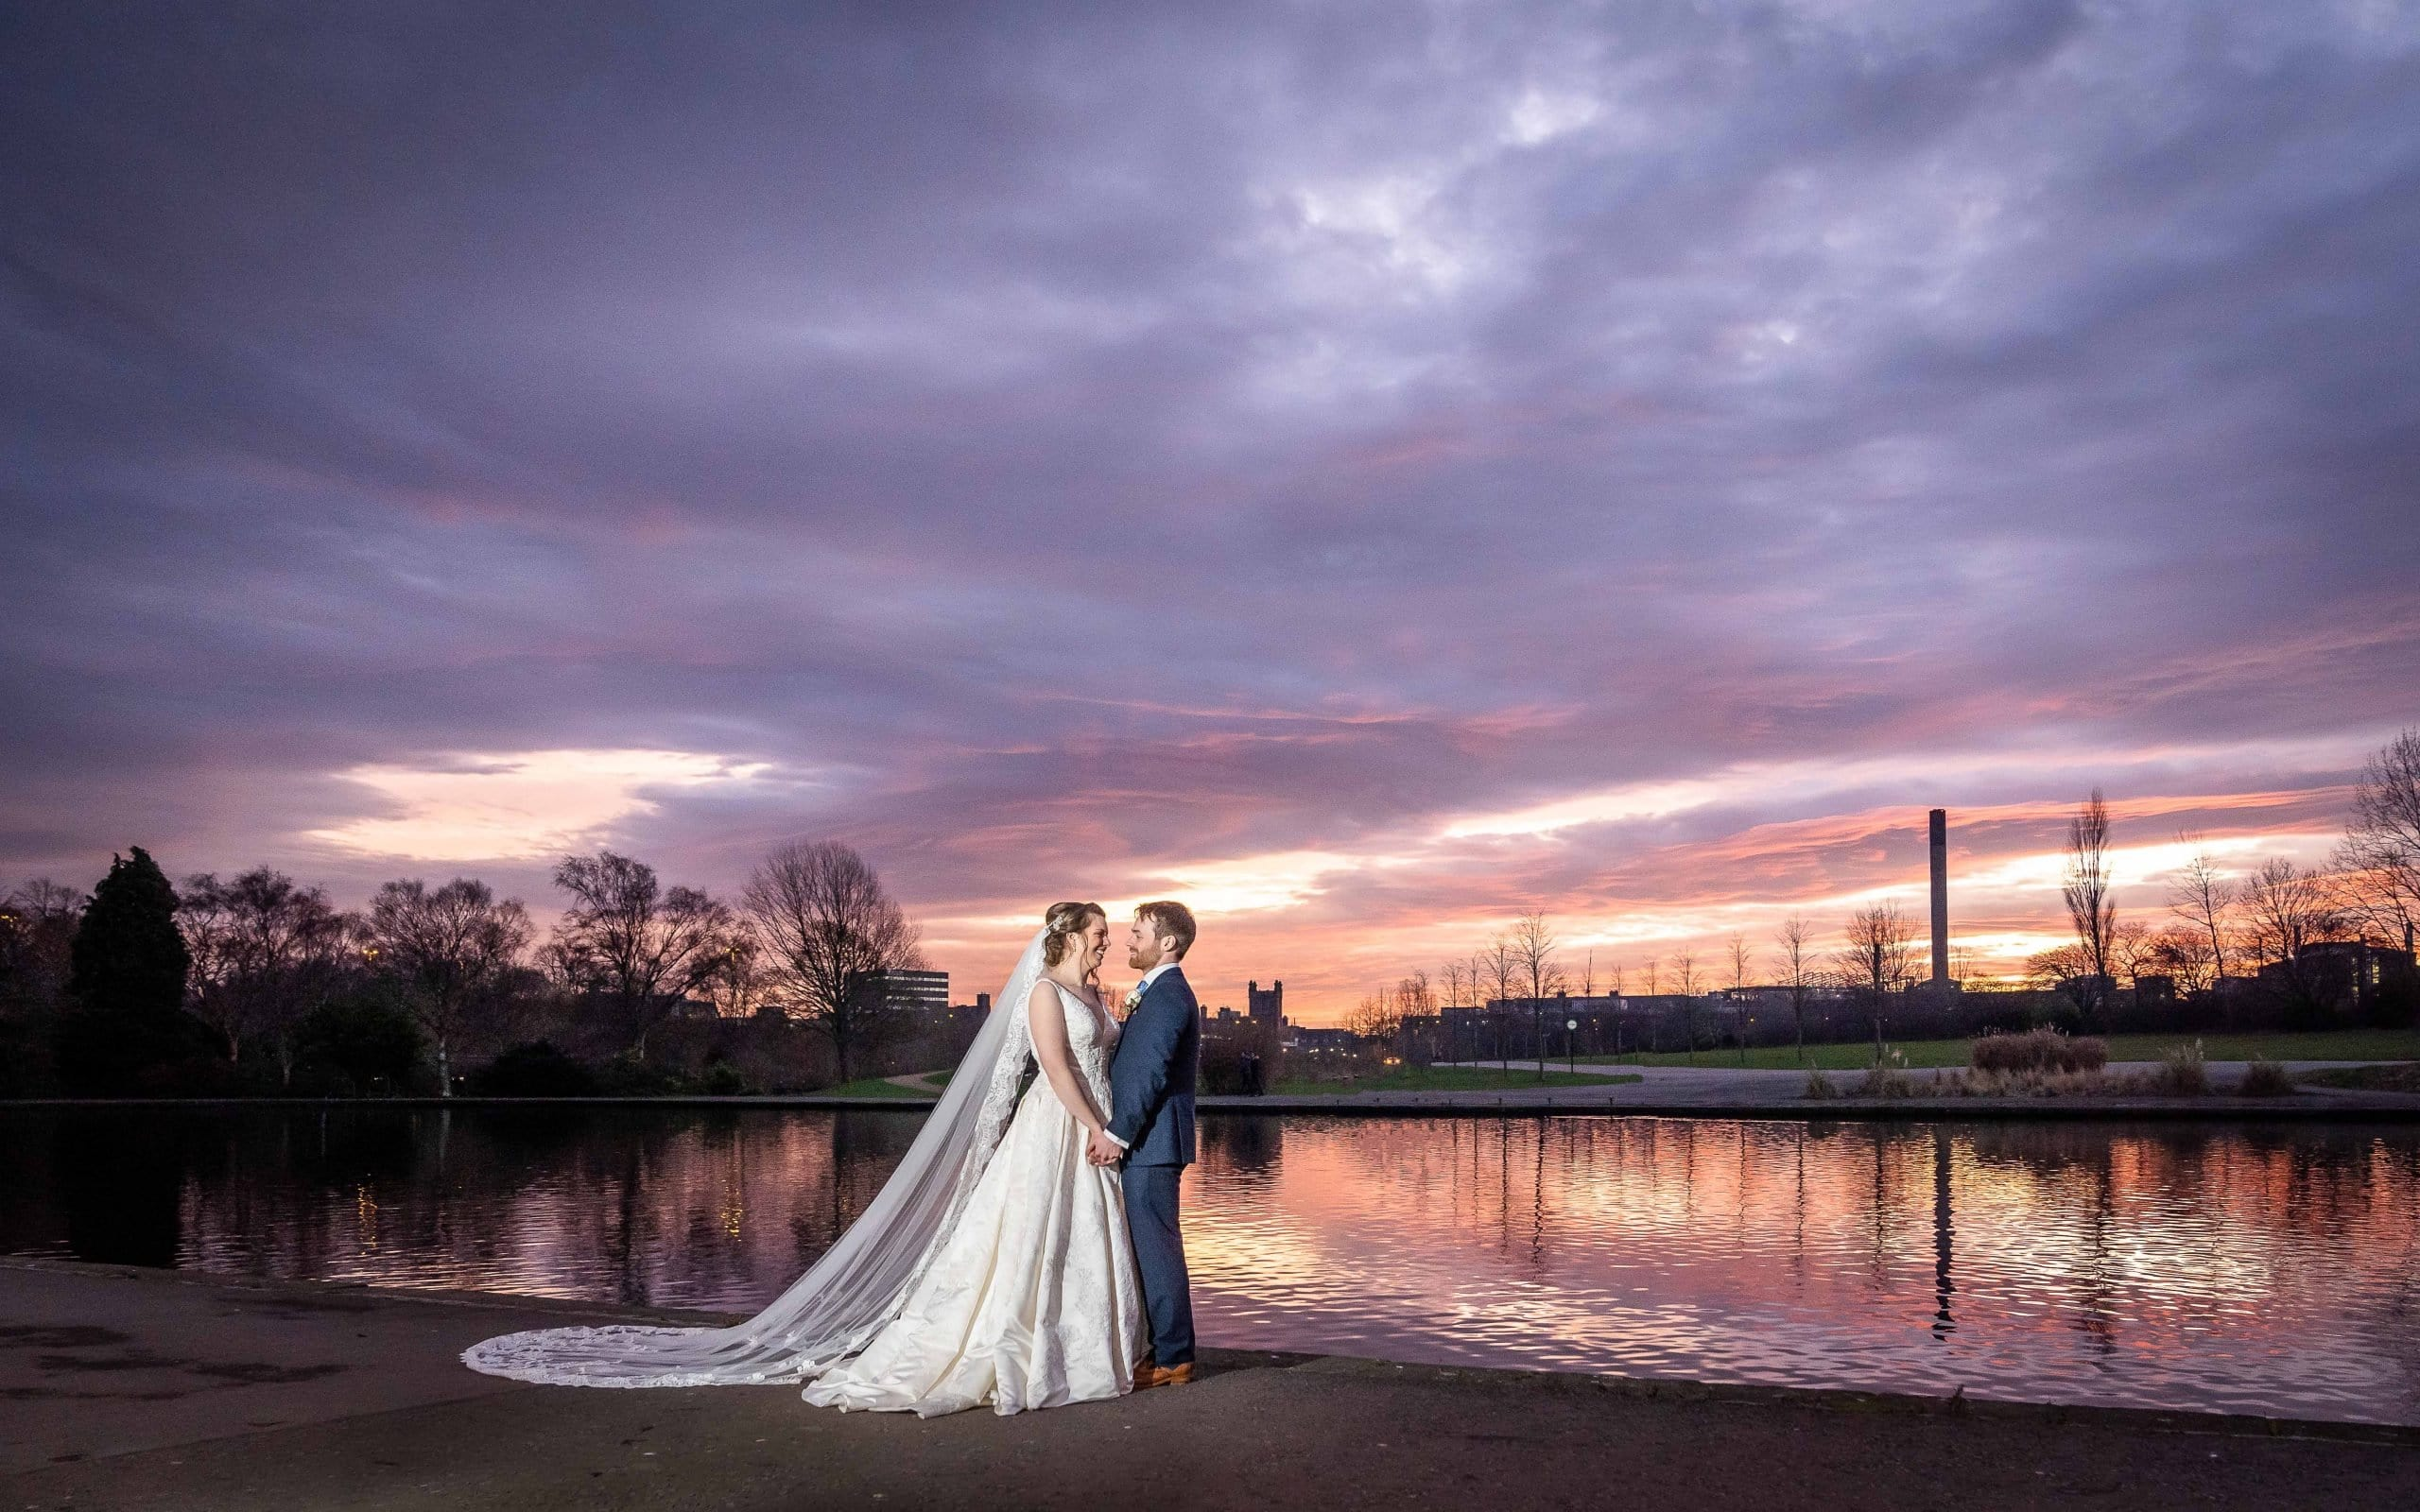 Sunset photo at Wylam Brewery